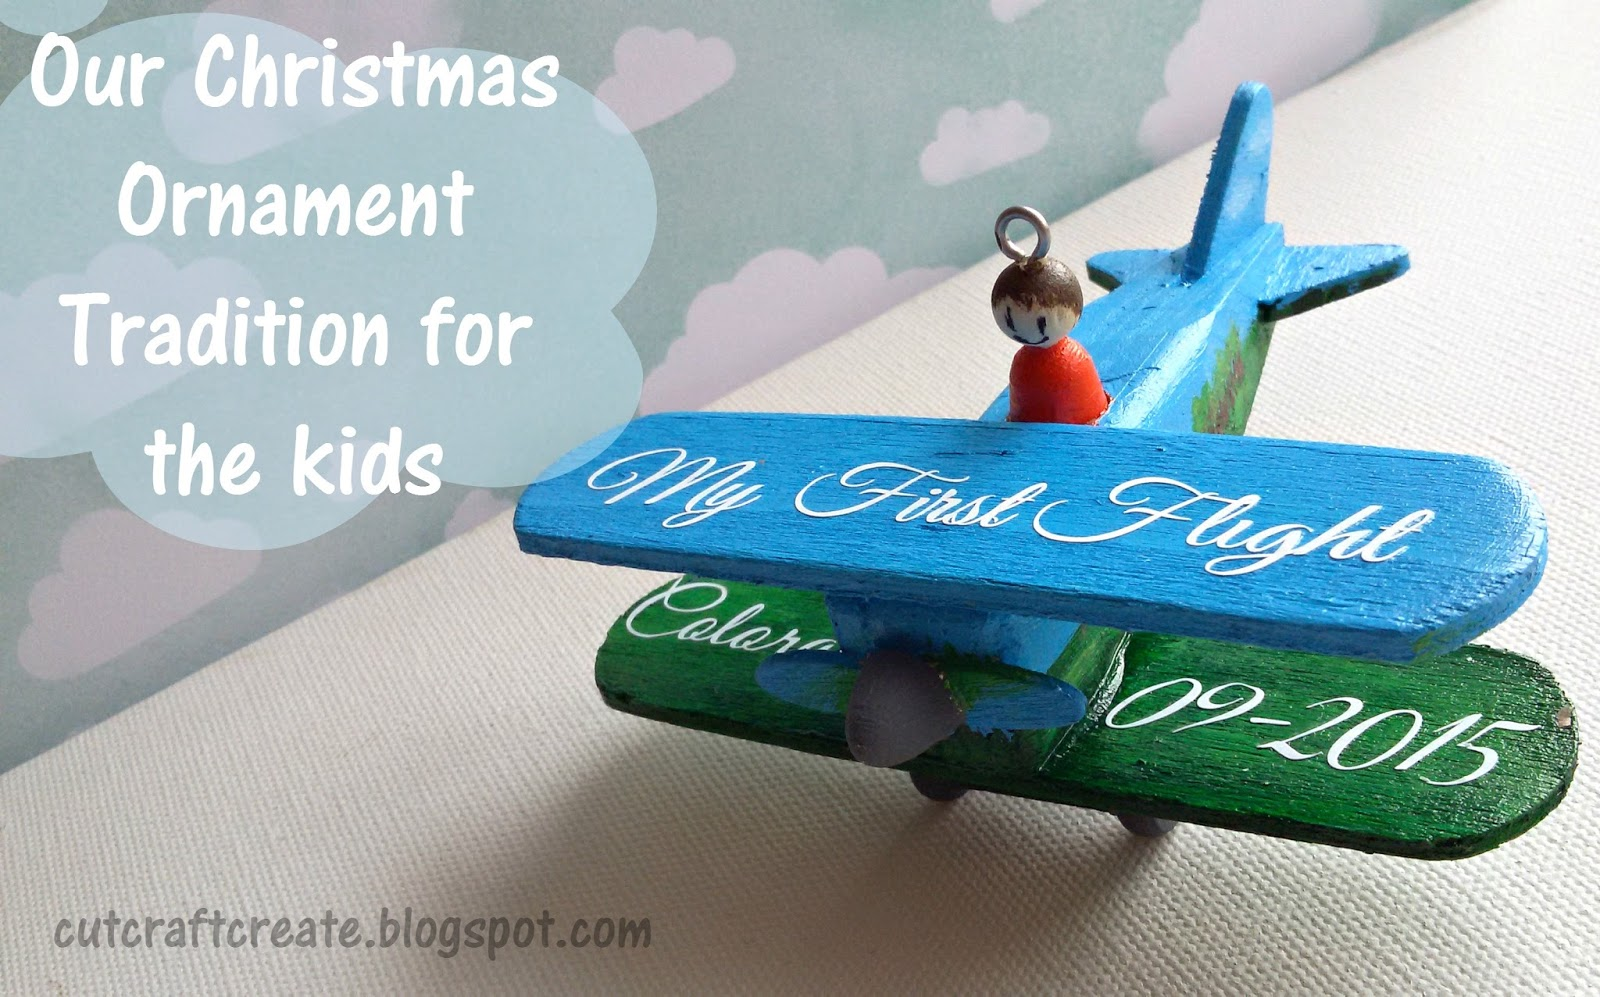 Cut Craft Create A Christmas Tradition You Need To Be Doing With